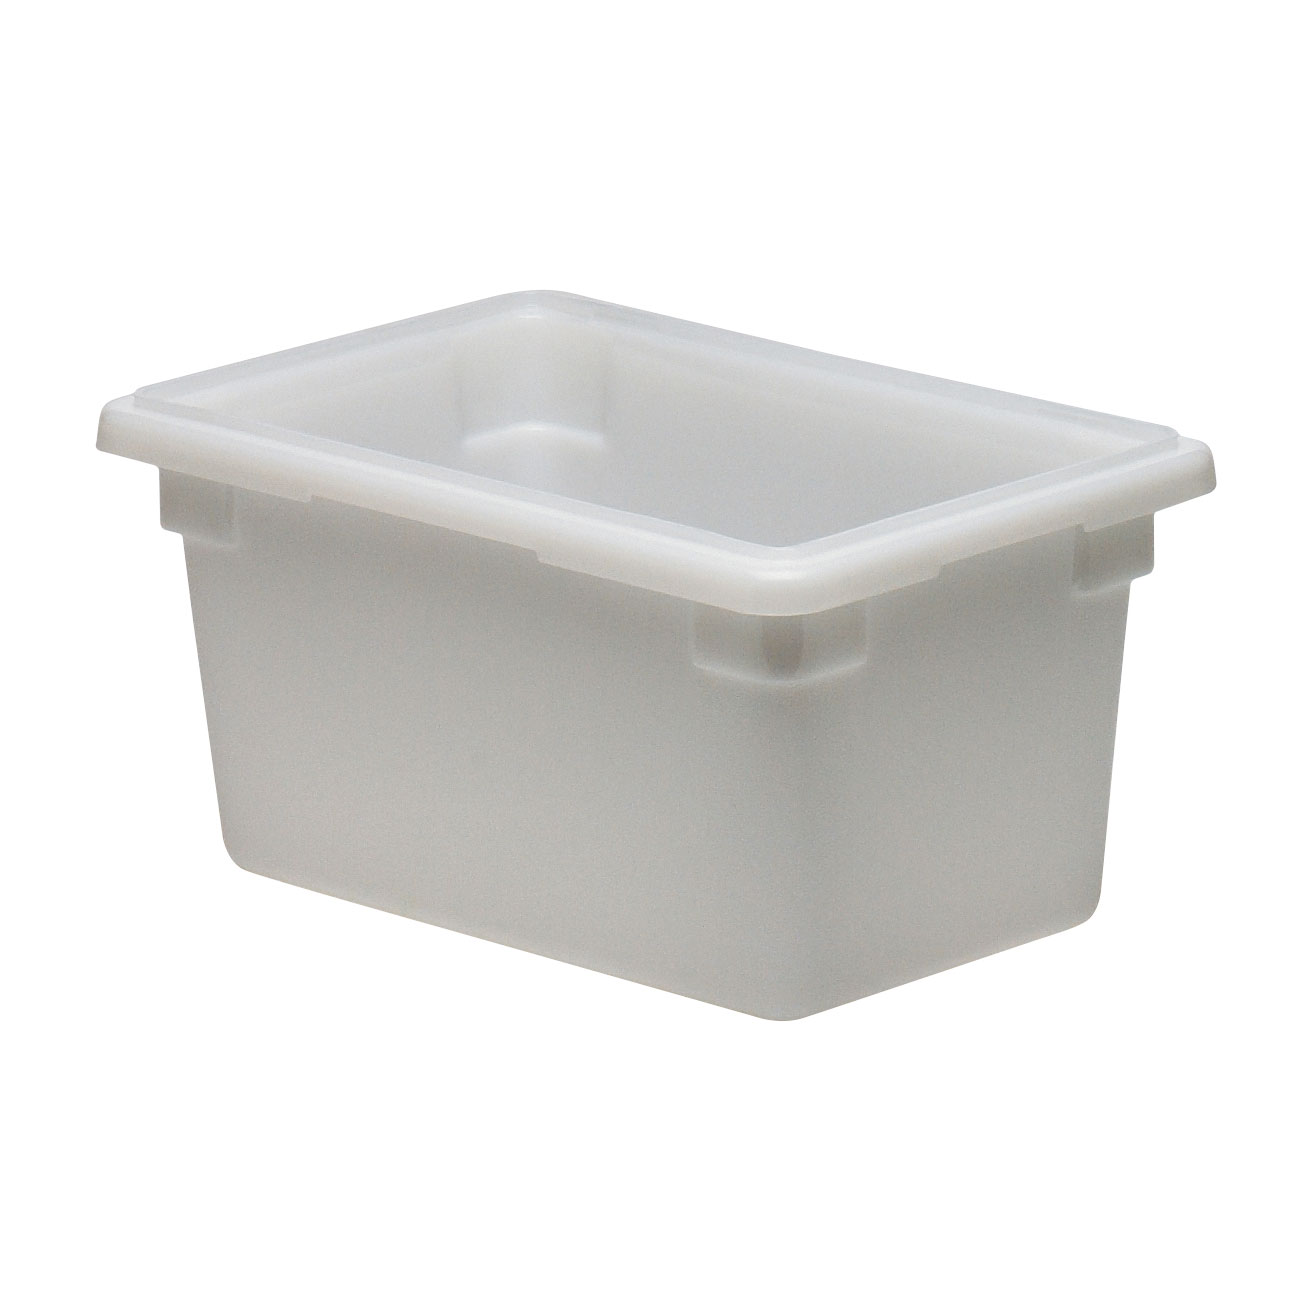 Cambro 12189P148 food/beverage storage container